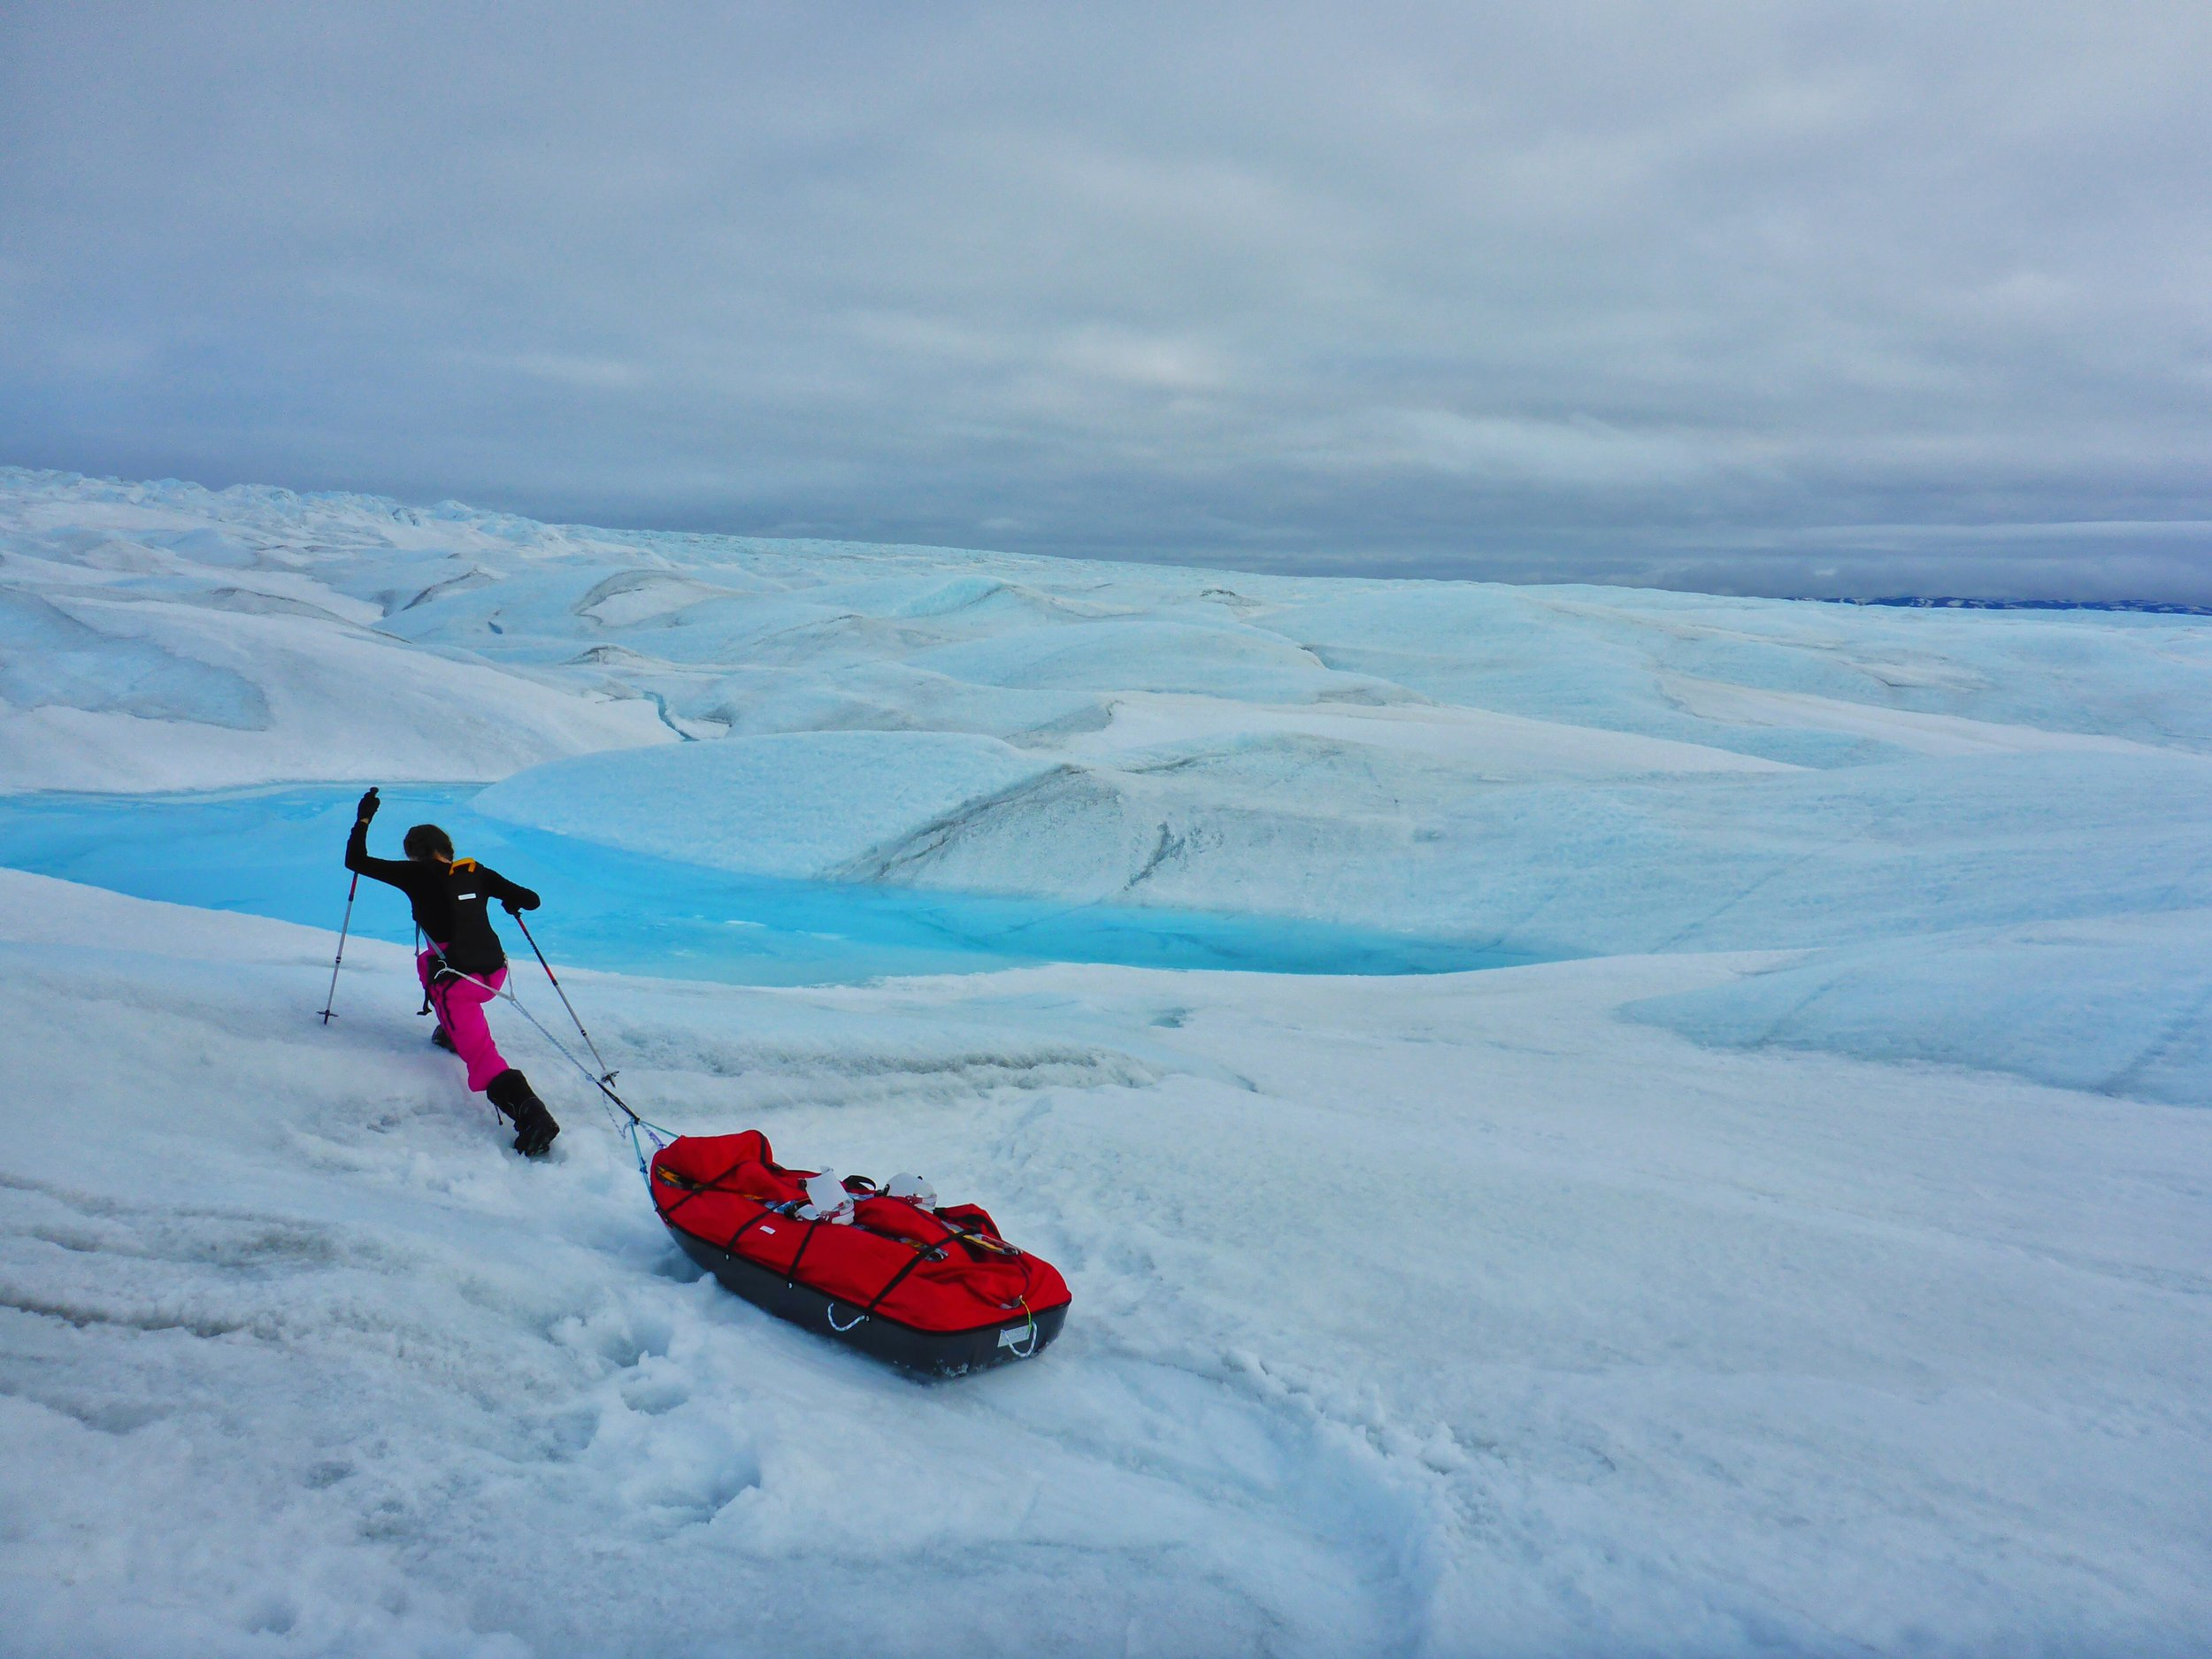 Jade had to drag a 70kg sled of gear behind her for the 540km journey.